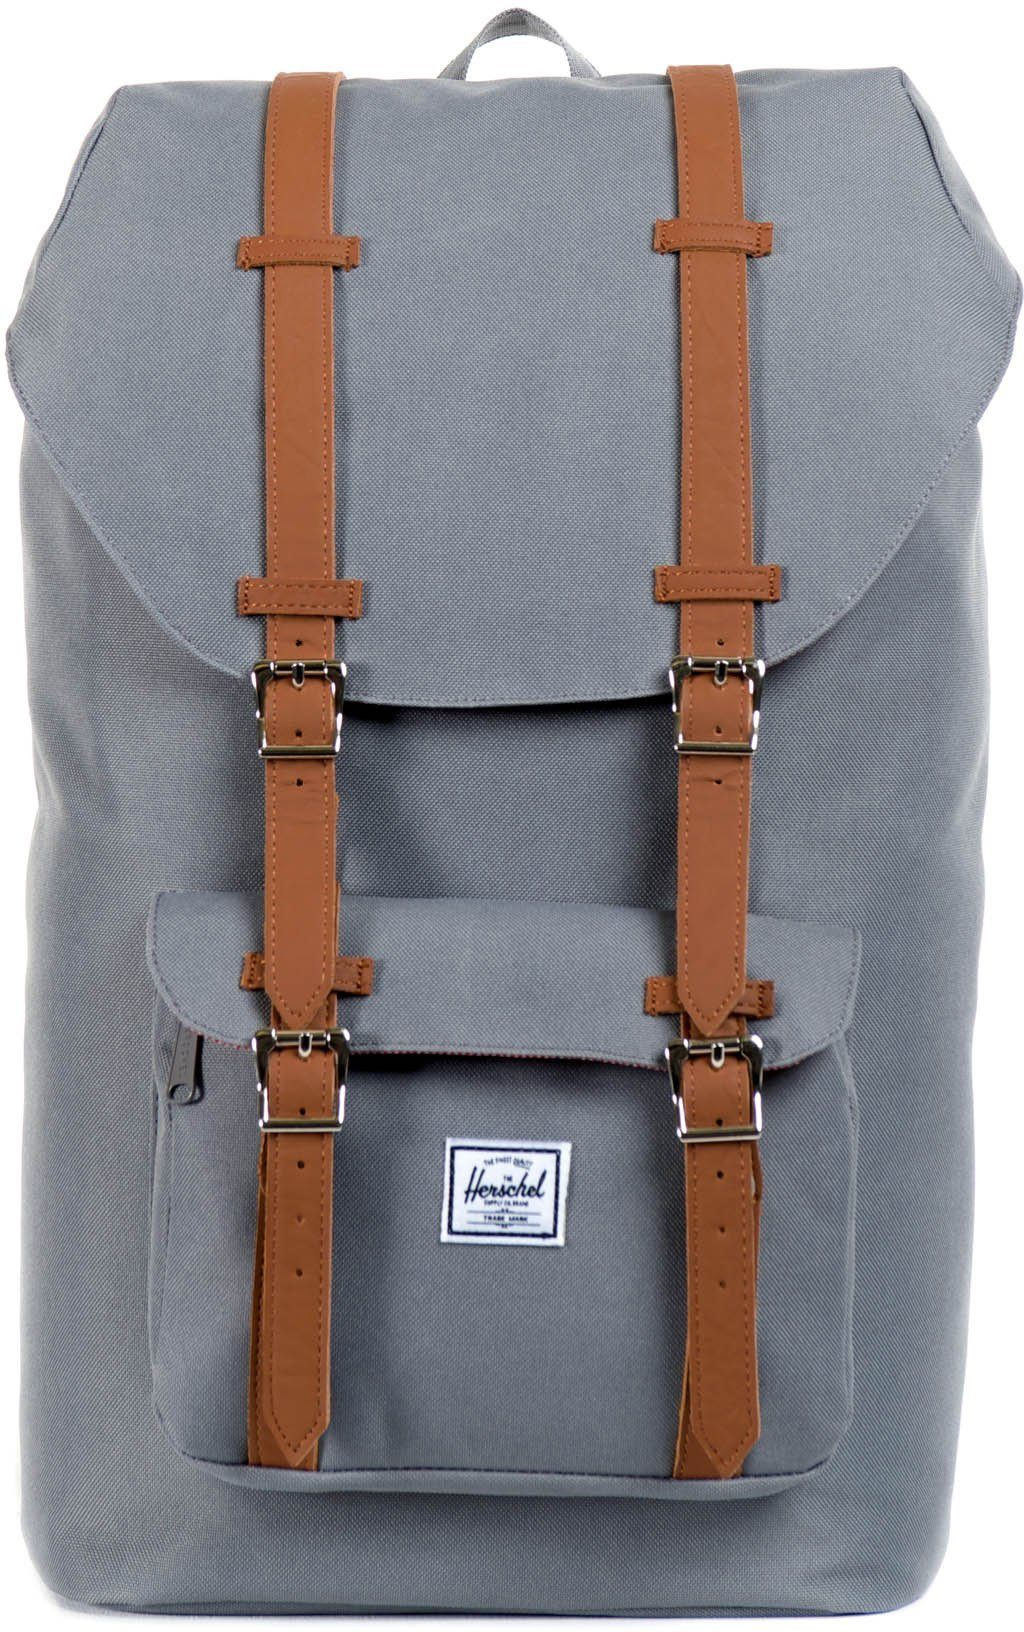 Herschel Rucksack mit Laptopfach, »Little America Backpack, Grey«